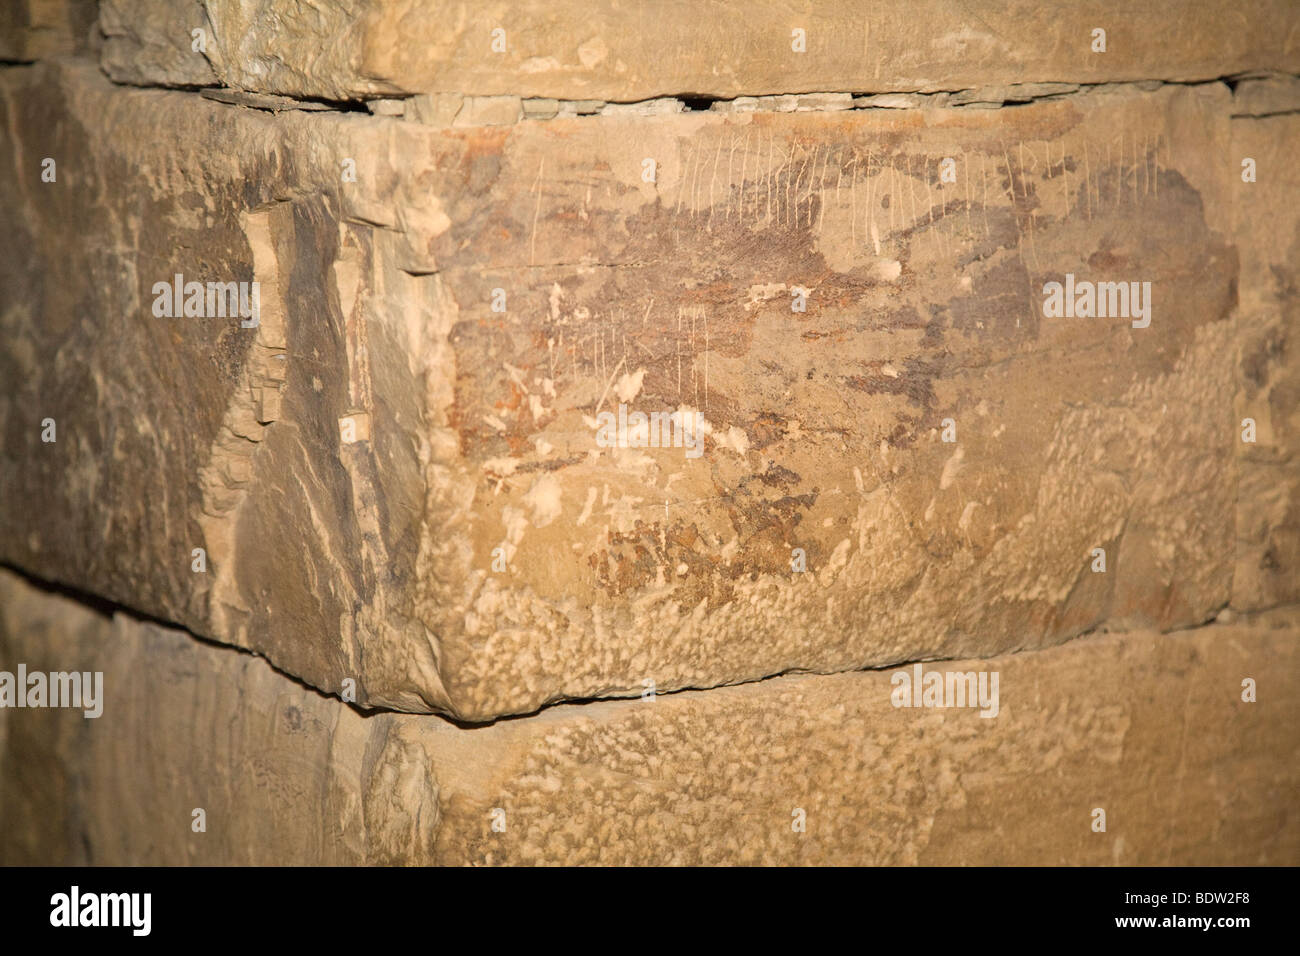 runic writing of the vikings in maeshowe, world cultural heritage, orkney islands, scotland, schottland - Stock Image